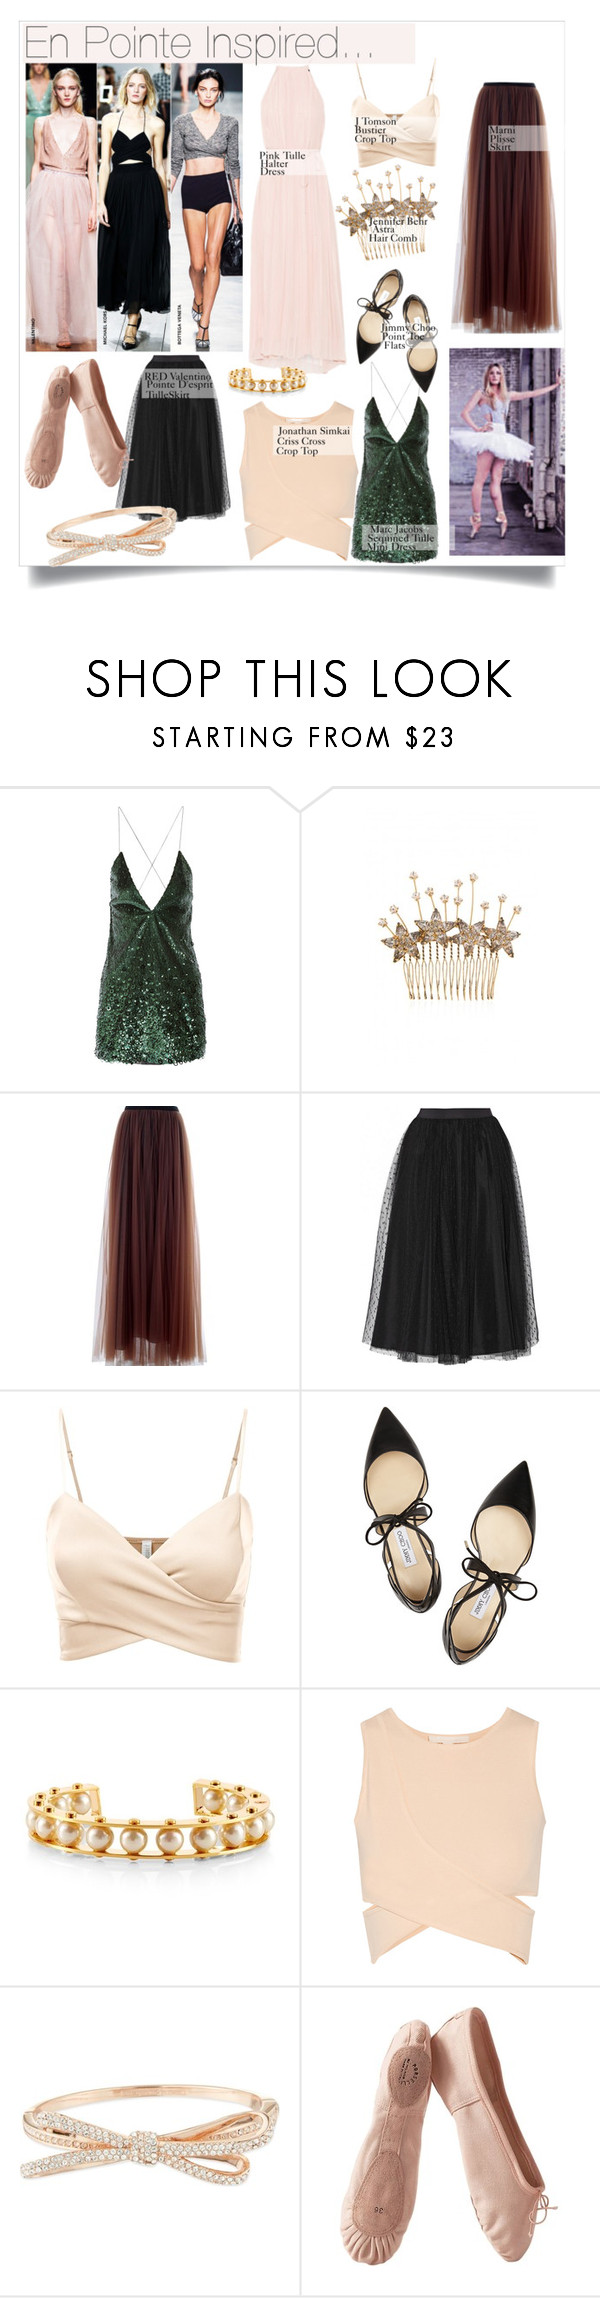 """""""Ballet Inspired ...."""" by nfabjoy ❤ liked on Polyvore featuring Marc Jacobs, Jennifer Behr, Marni, RED Valentino, J.TOMSON, Jimmy Choo, Lele Sadoughi, Jonathan Simkhai, Kate Spade and Porselli"""